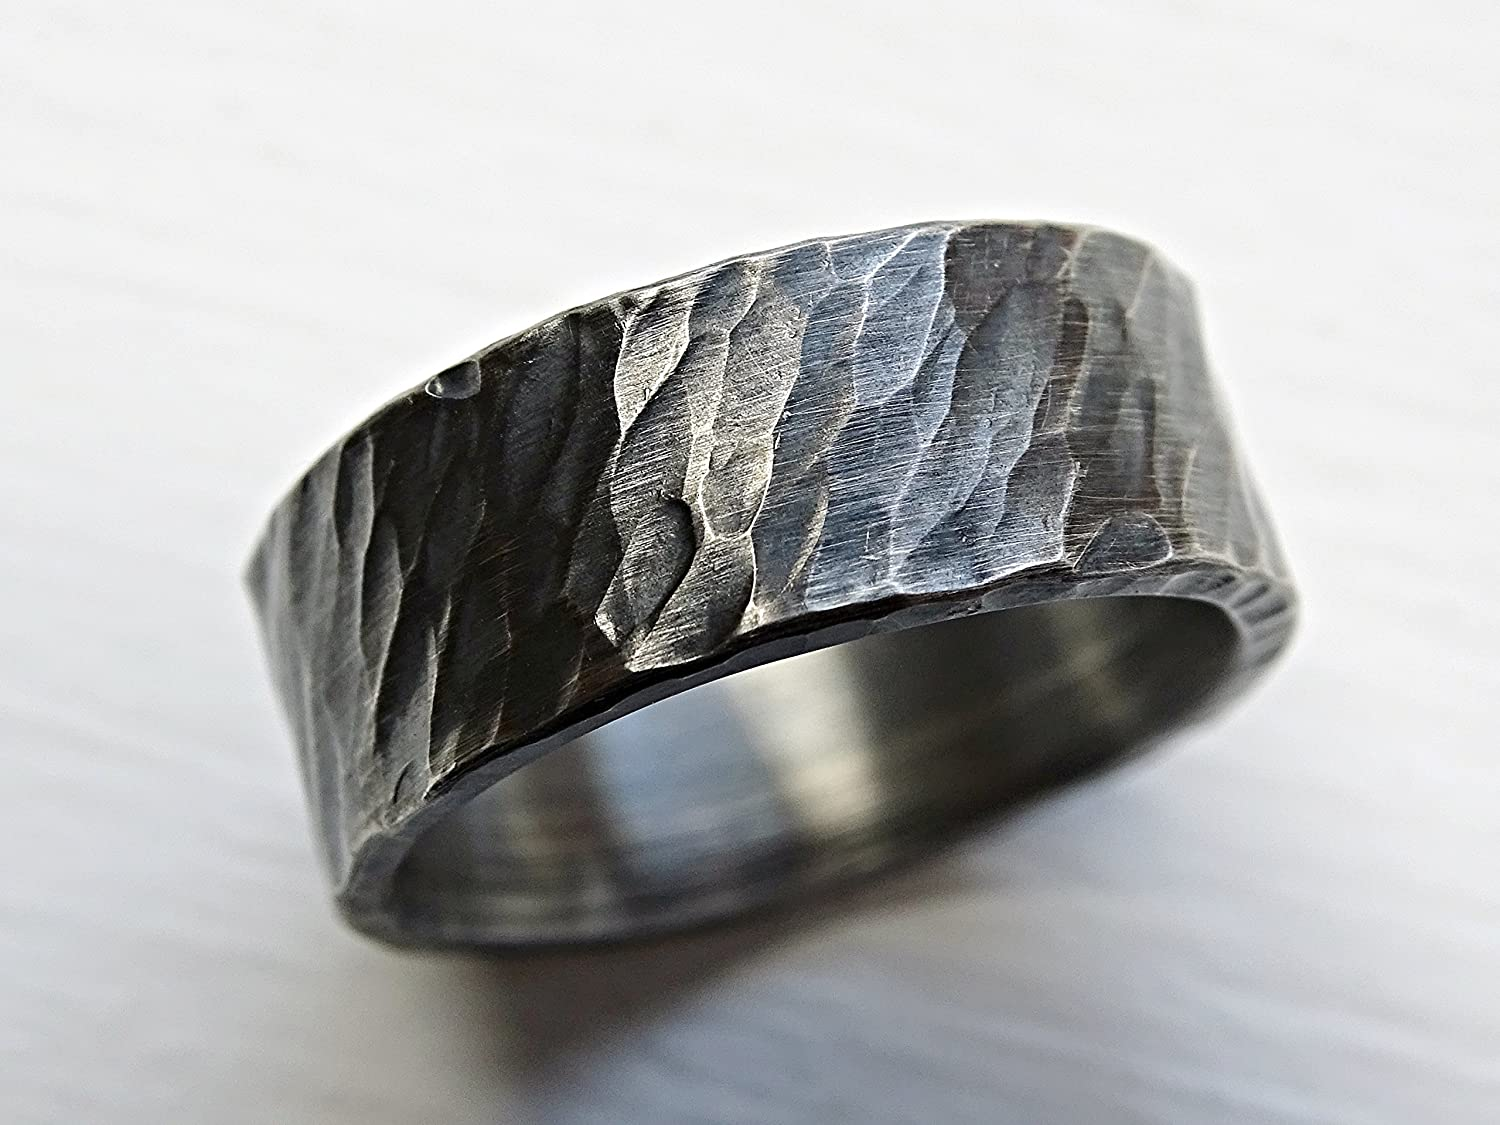 c50a694e0ed01 Amazon.com: rustic viking ring black silver, mens forged ring ...